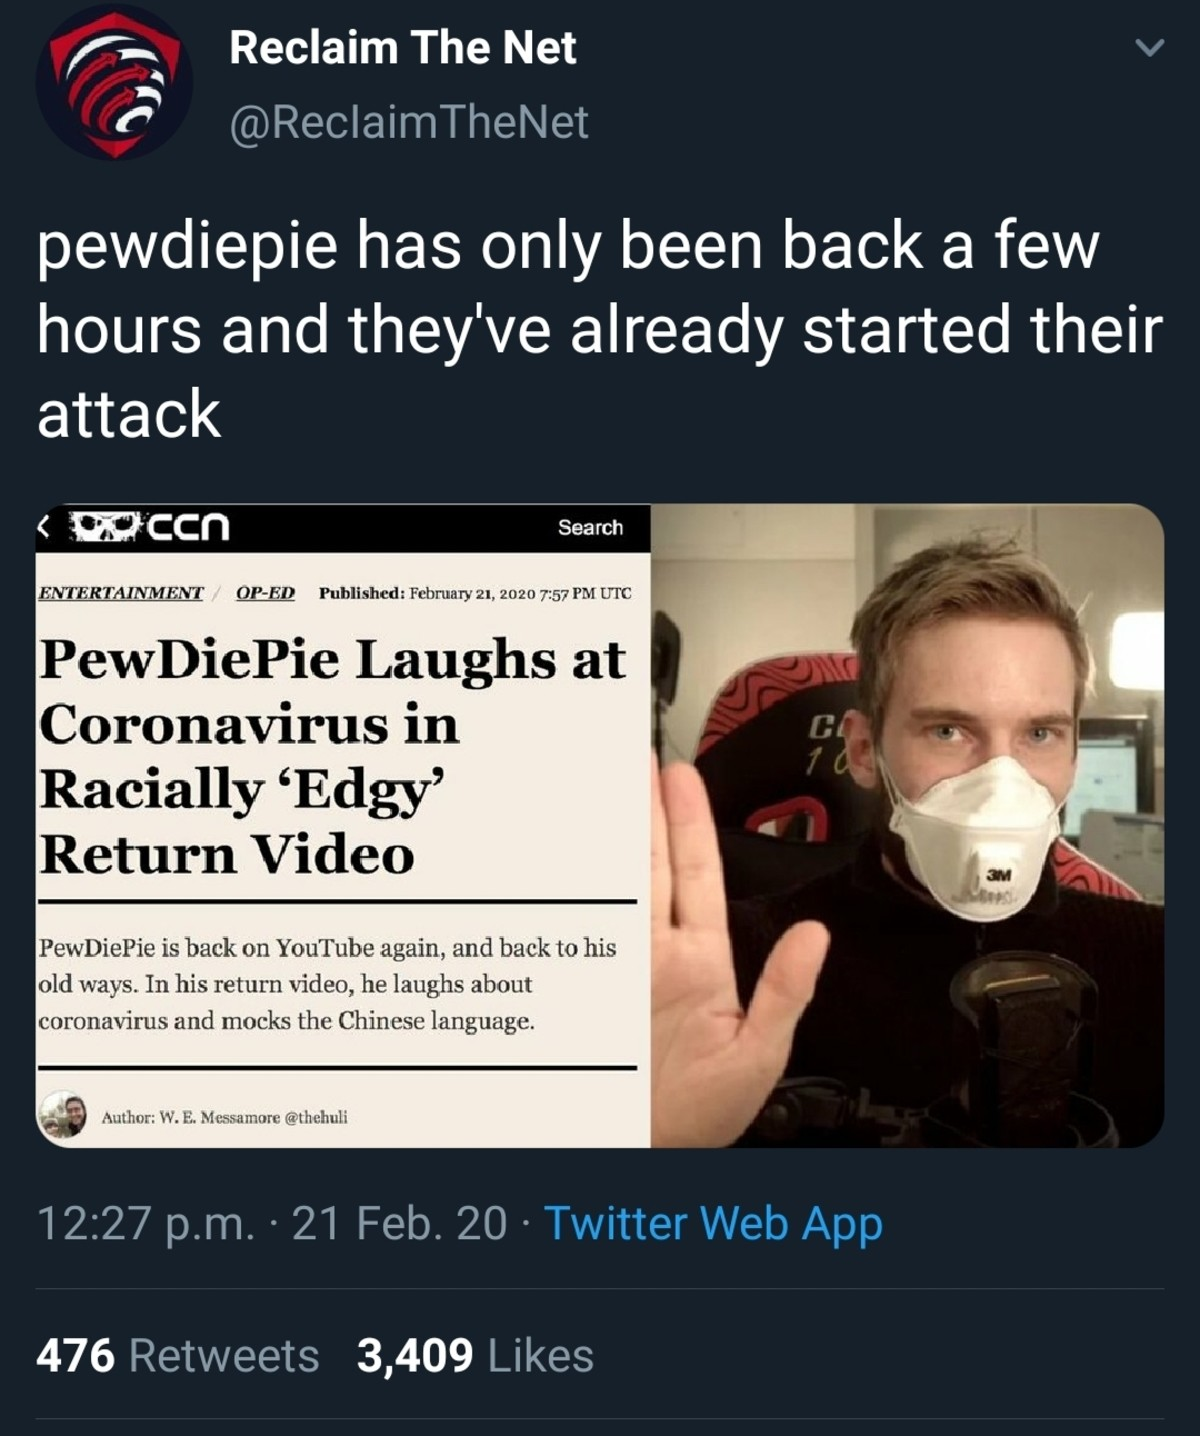 PewDiePie. .. And with that, I just won a bet. Thanks Mr. Journo, very nice!